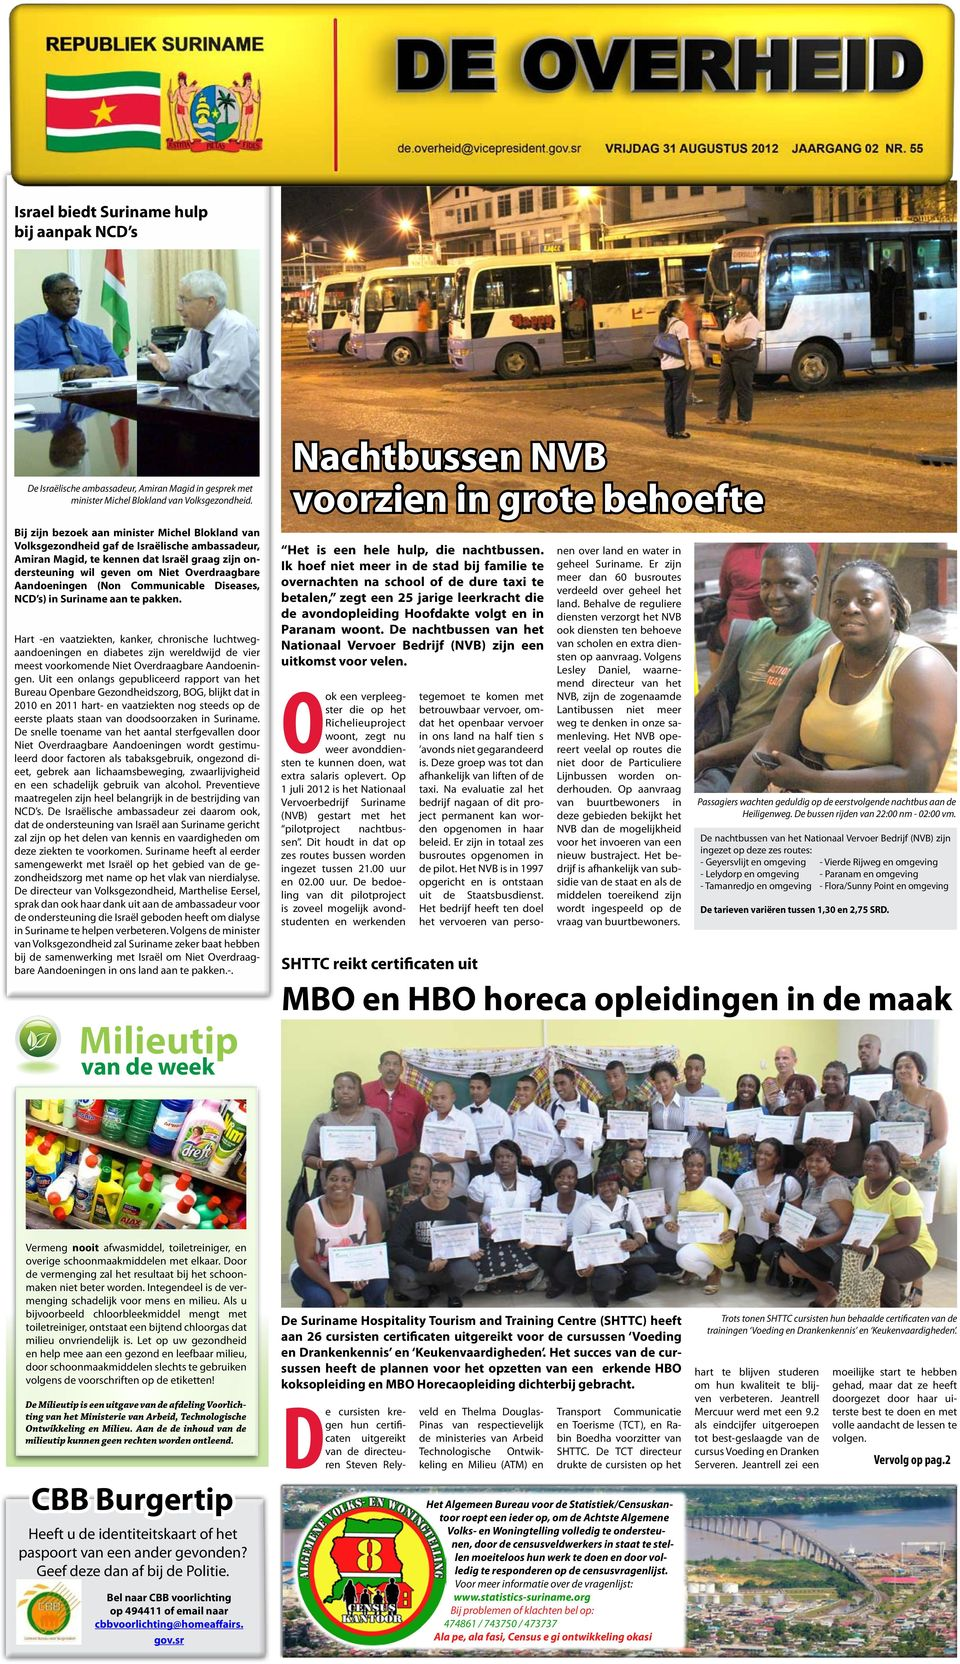 Aandoeningen (Non Communicable Diseases, NCD s) in Suriname aan te pakken.